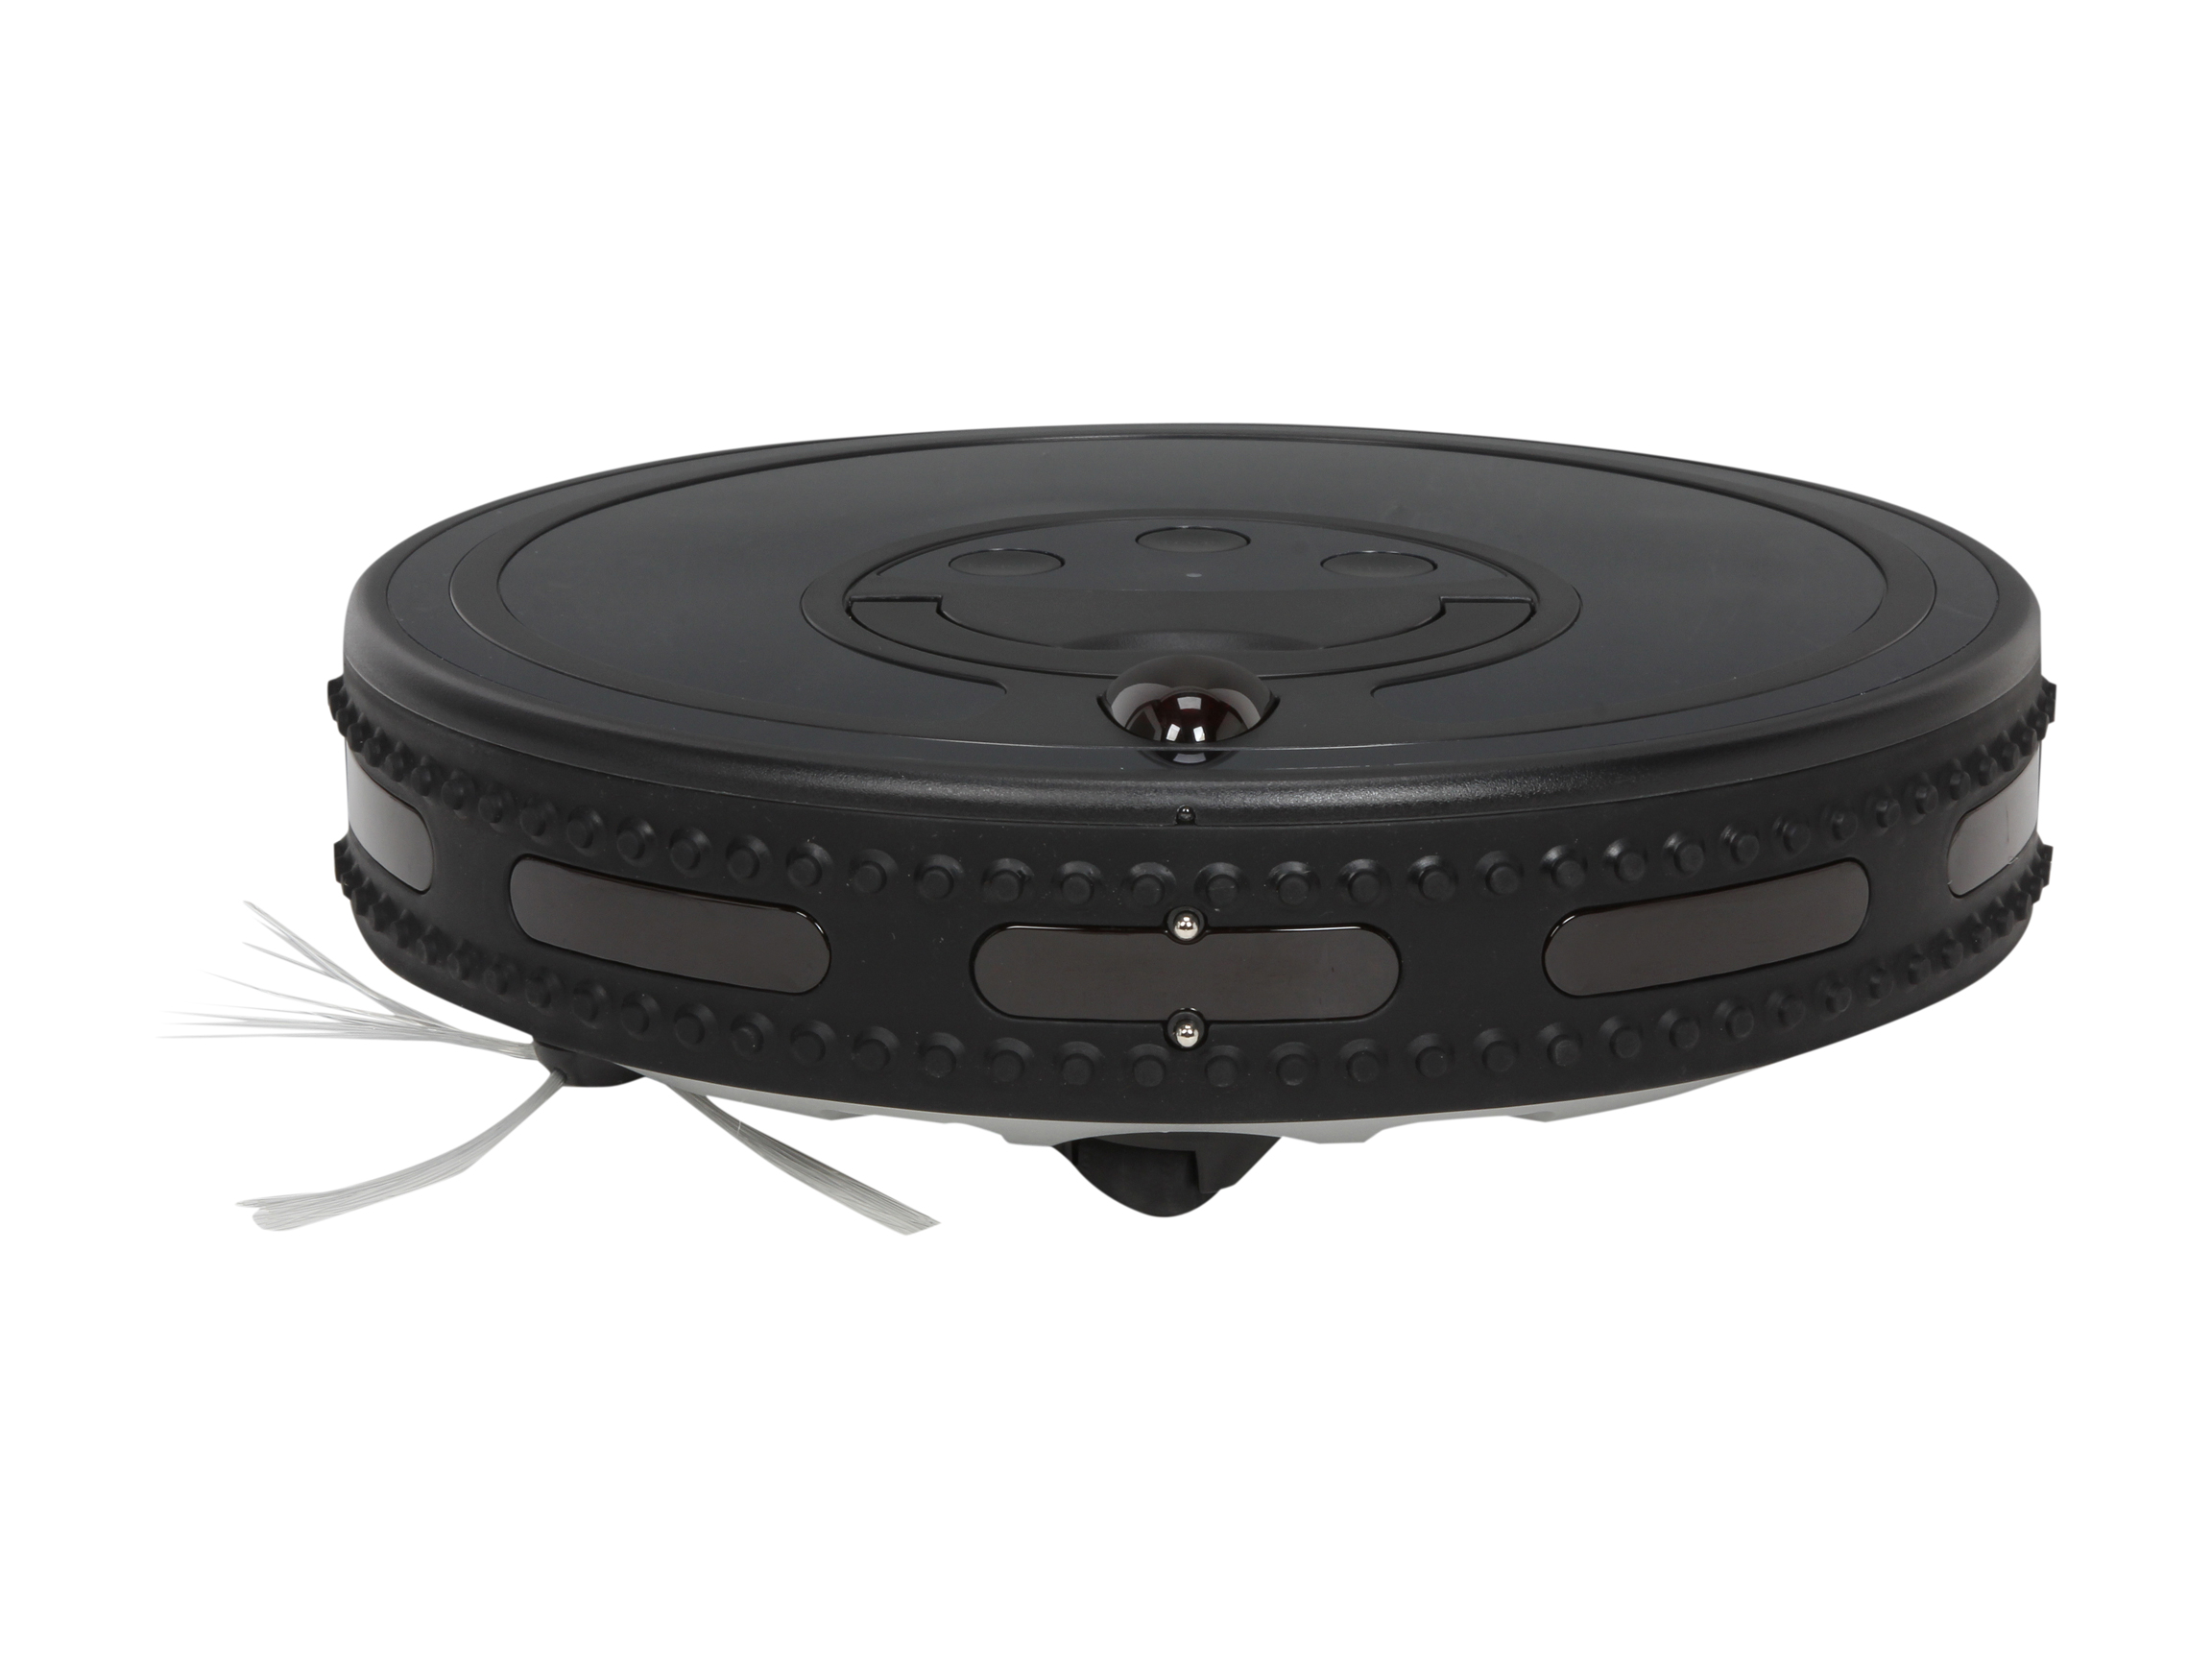 Infinuvo HOVO510 Hovo Robotic Vacuum with home base, scheduler, virtual blocker, and LCD remote, by Metapo